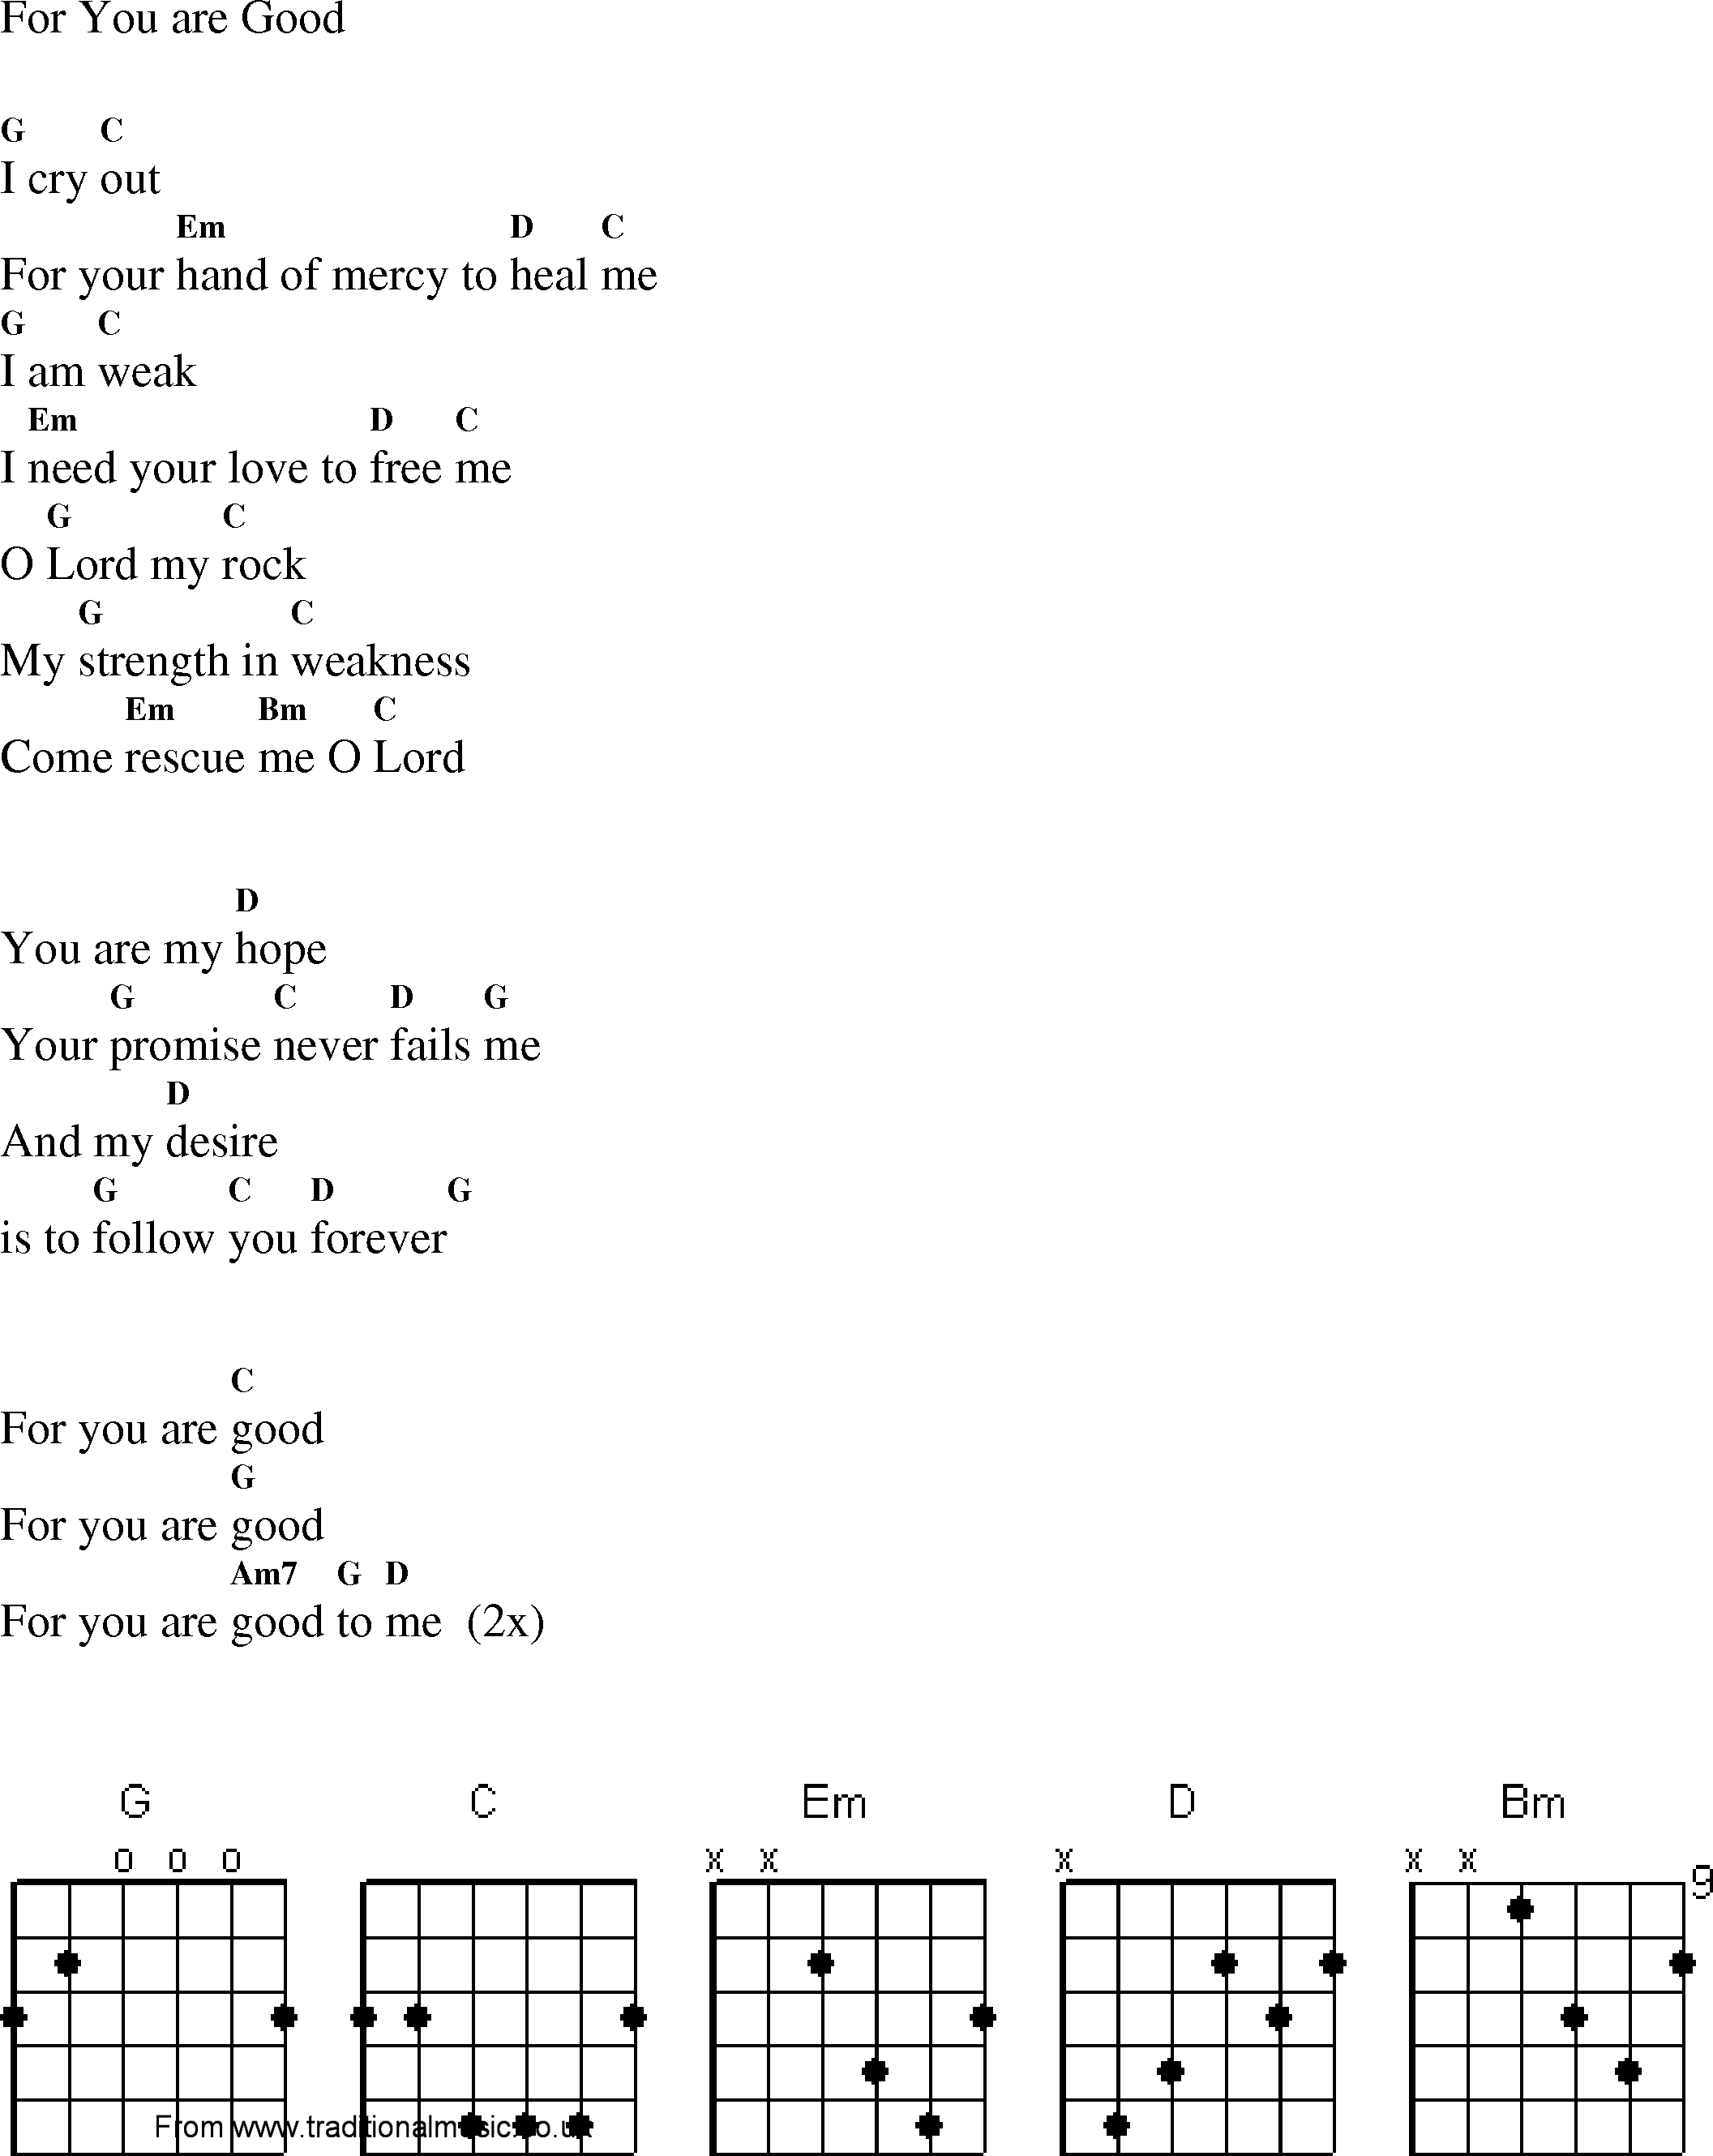 Christian Gospel Worship Song Lyrics with Chords - For You